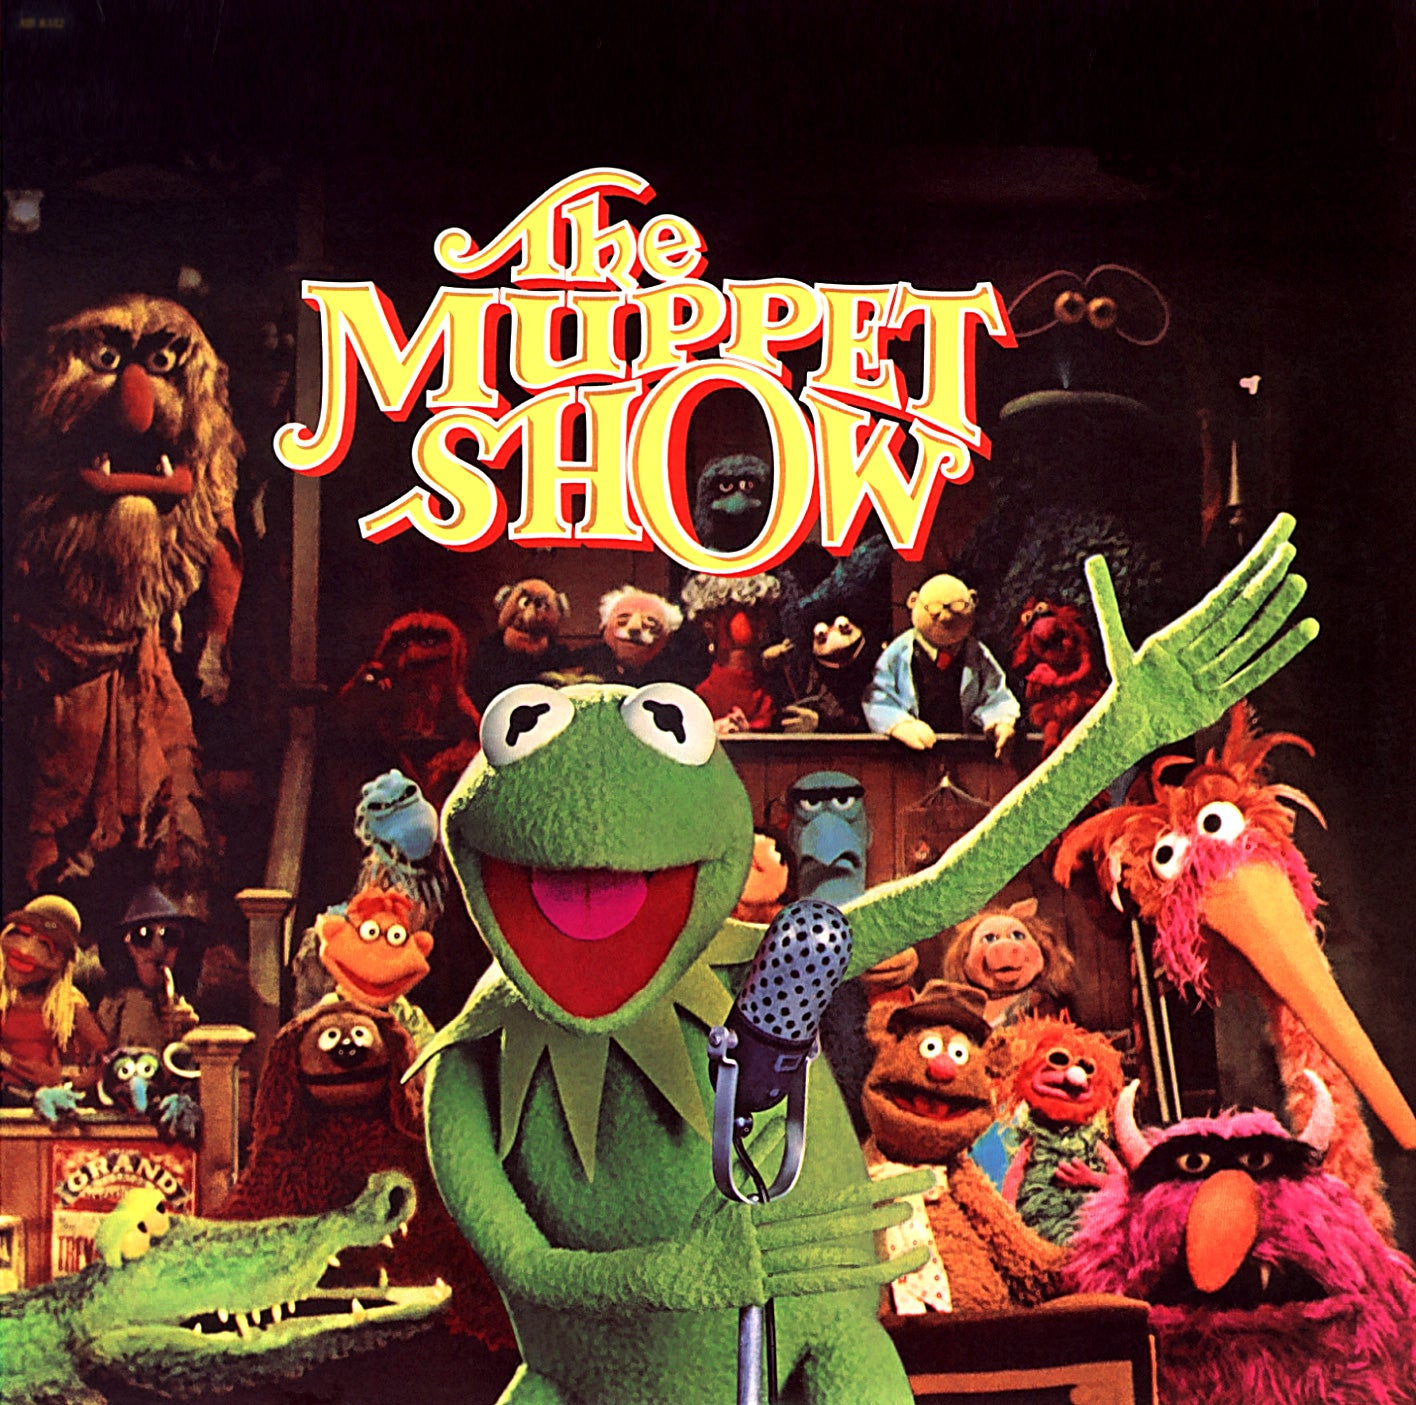 http://media.comicbook.com/uploads1/2015/04/album-muppetshowlp-129959.jpg